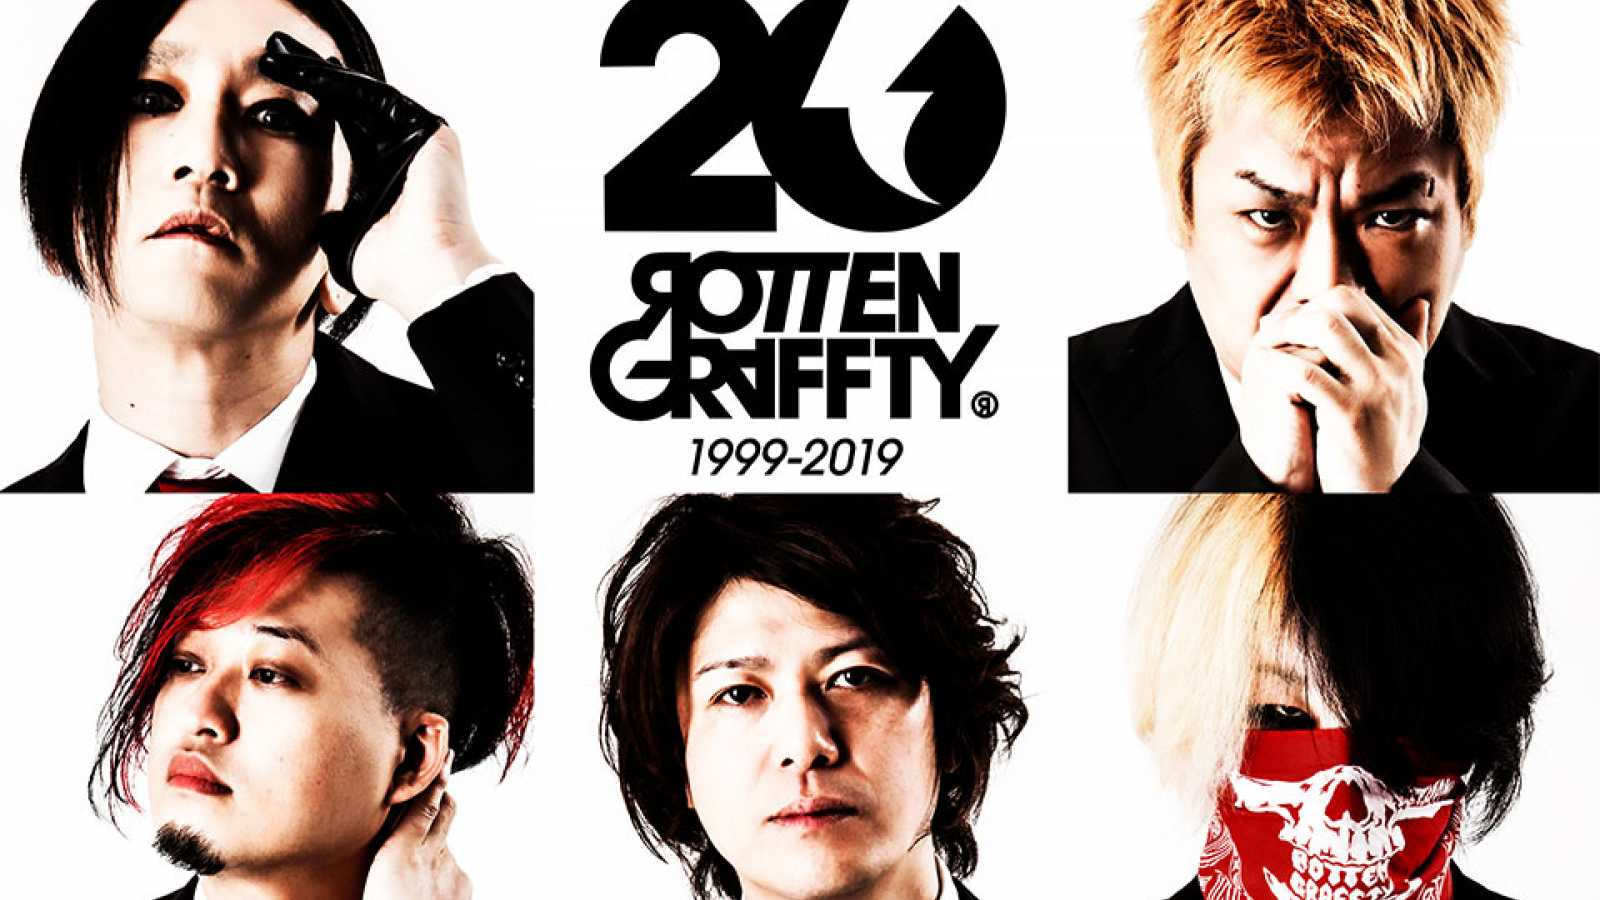 ROTTENGRAFFTY Announce First Tribute Album and New Single © ROTTENGRAFFTY. All rights reserved.